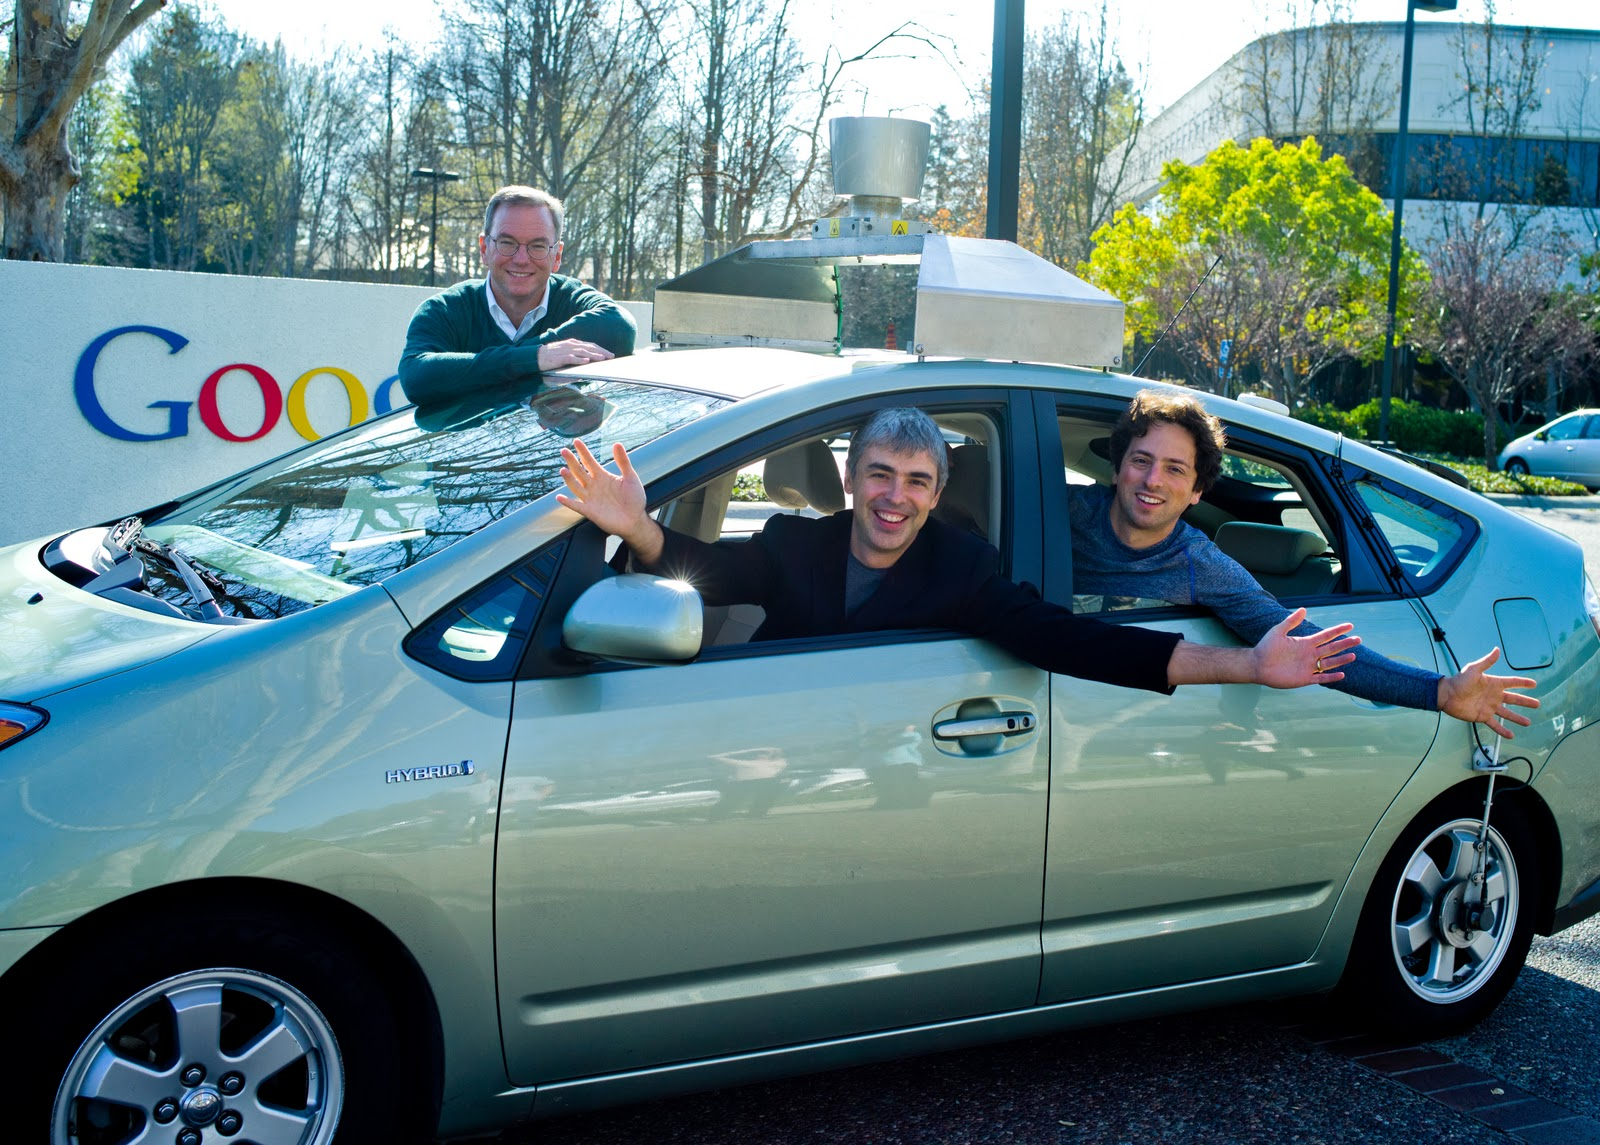 Google co-founders Larry Page, left, and Sergey Brin, inside a Google self-driving car, with Executive Chairman Eric Schmidt standing behind. The self-driving cars are reportedly part of Google X, a collection of advanced technology projects.